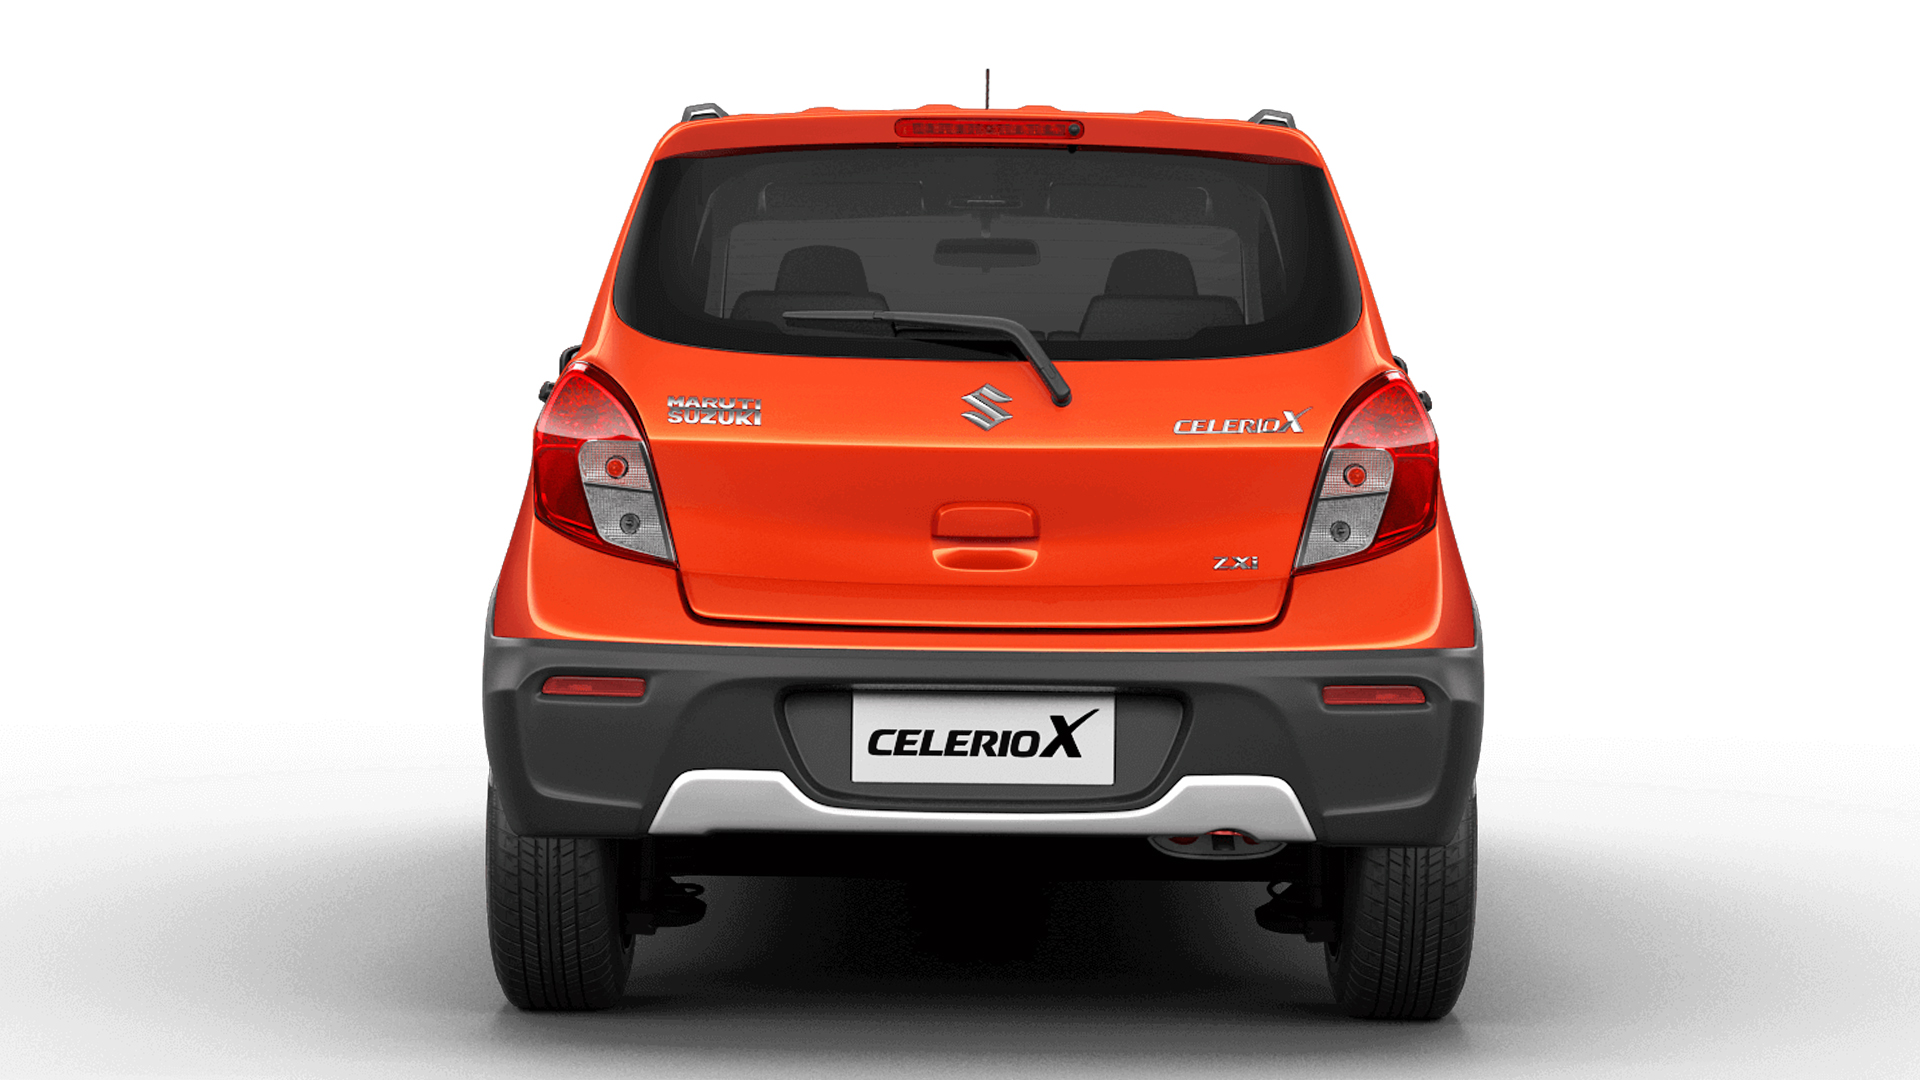 Maruti Suzuki Celerio X 2018 Price Mileage Reviews